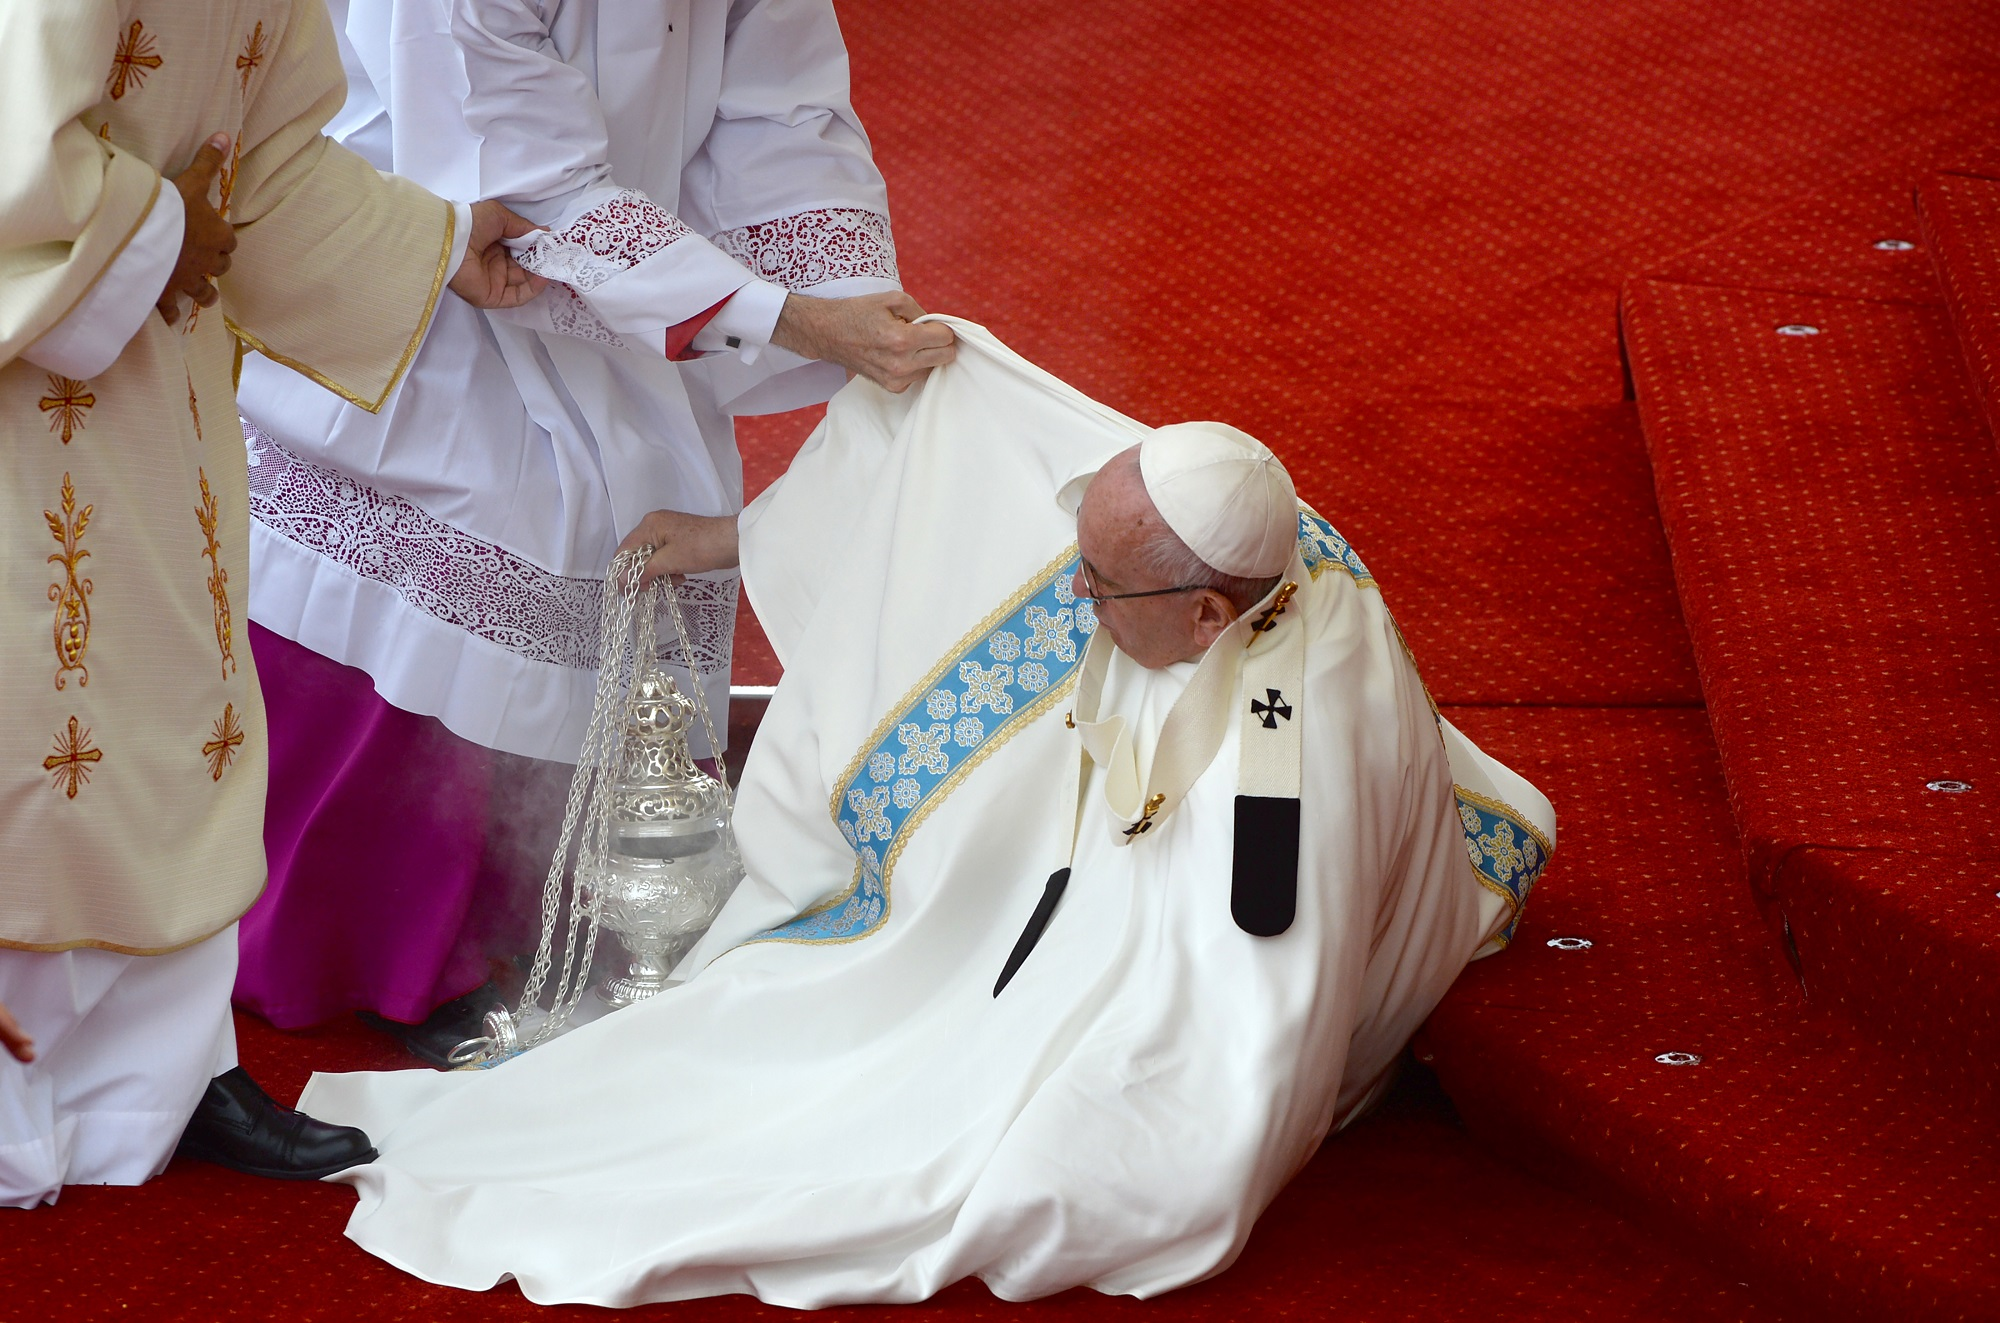 POLAND-VATICAN-DIPLOMACY-RELIGION-POPE-YOUTH